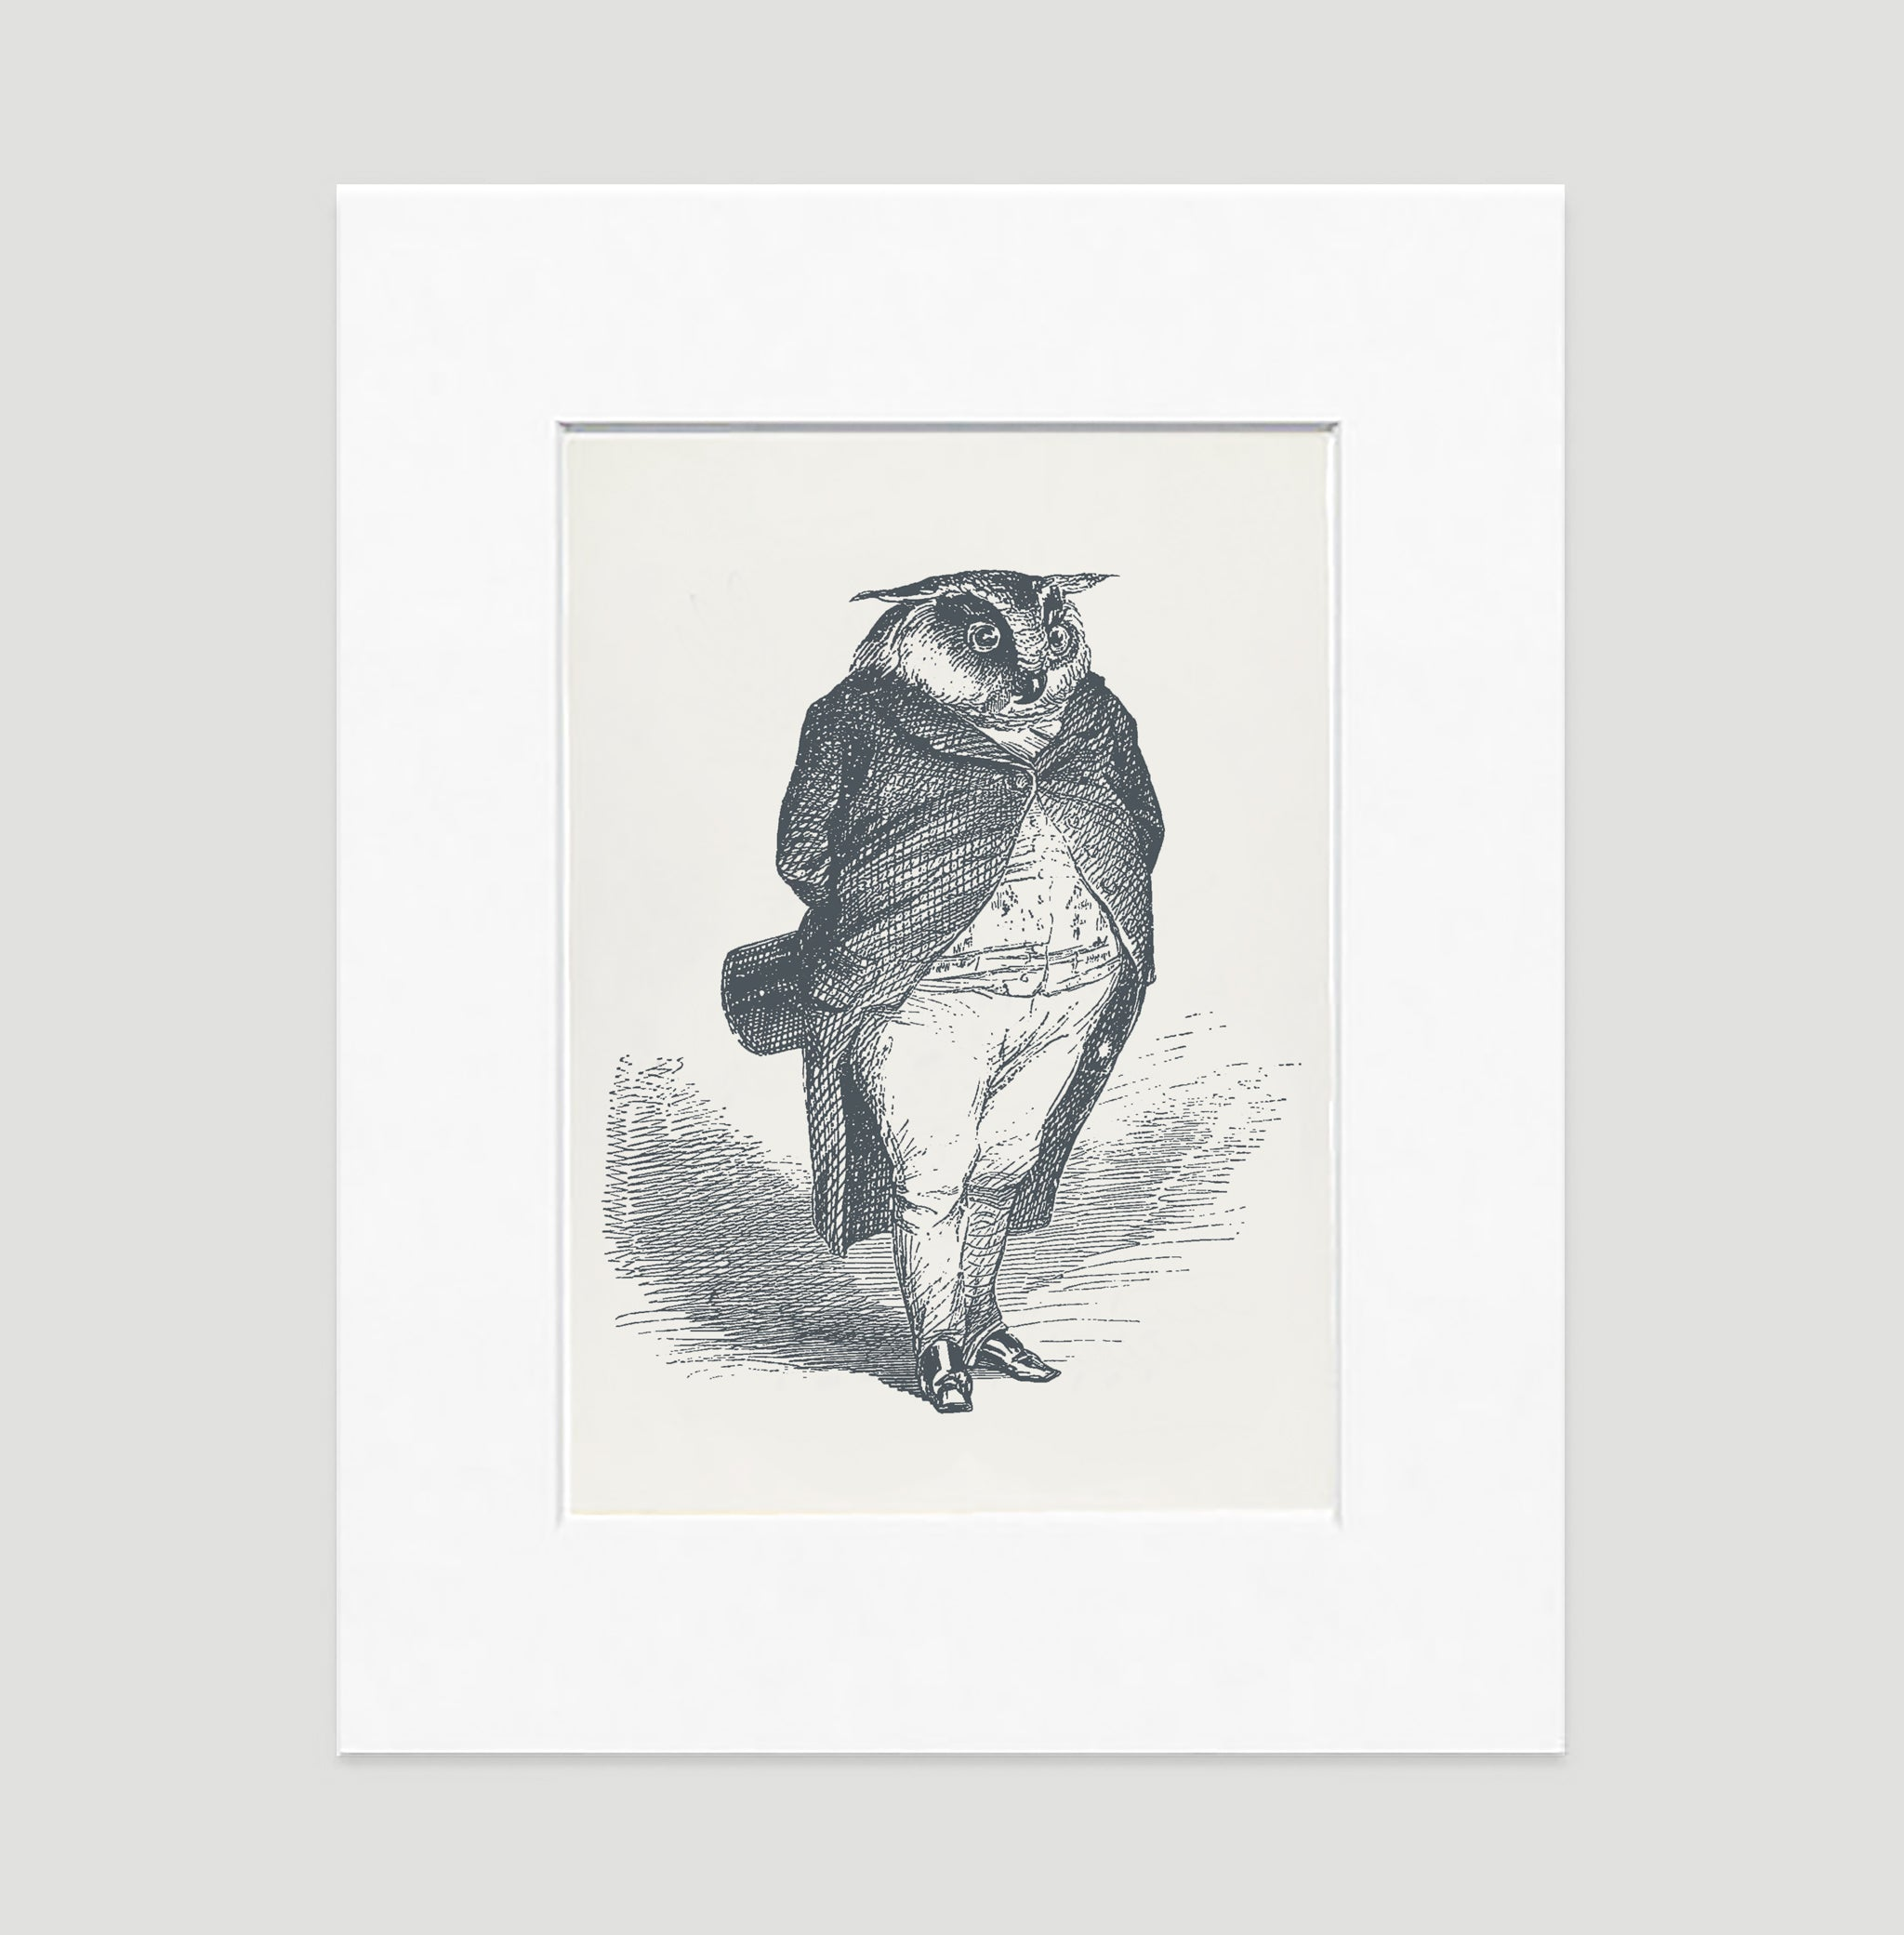 The Distinguished Owl Illustration Art Print Di Lewis Living Room Wall Decor